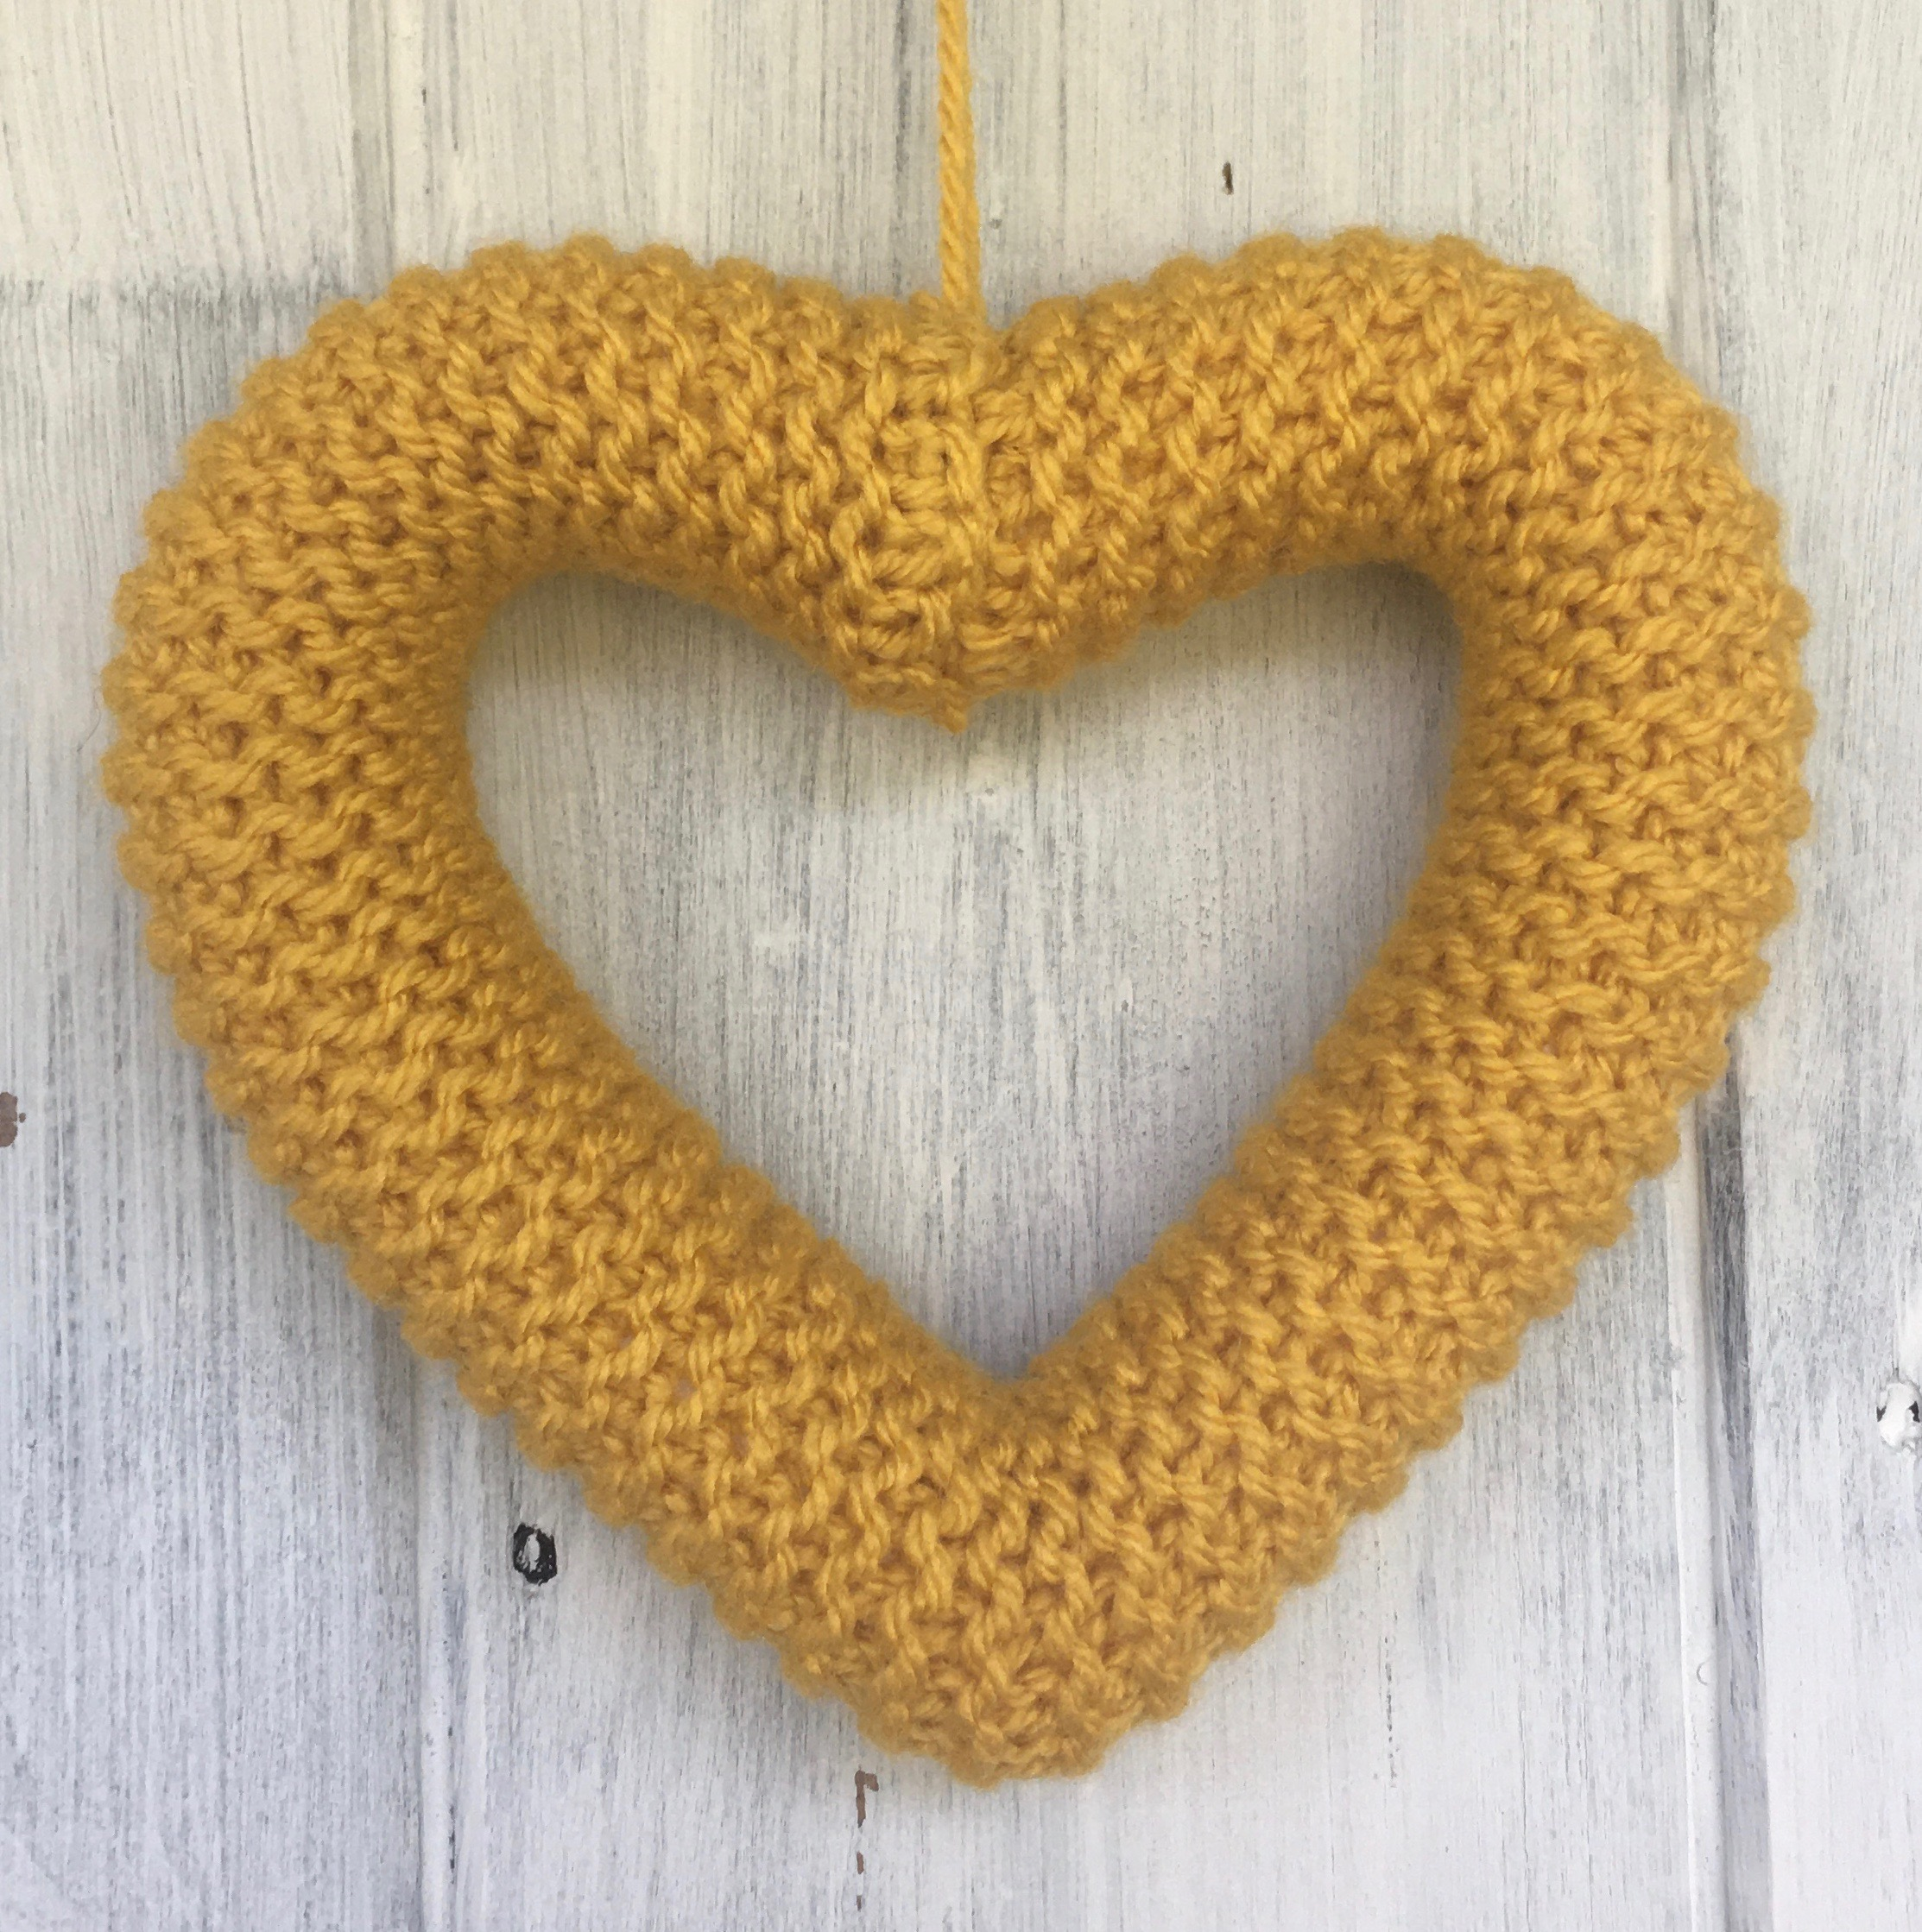 Knit a Heart kit, knit your own heart